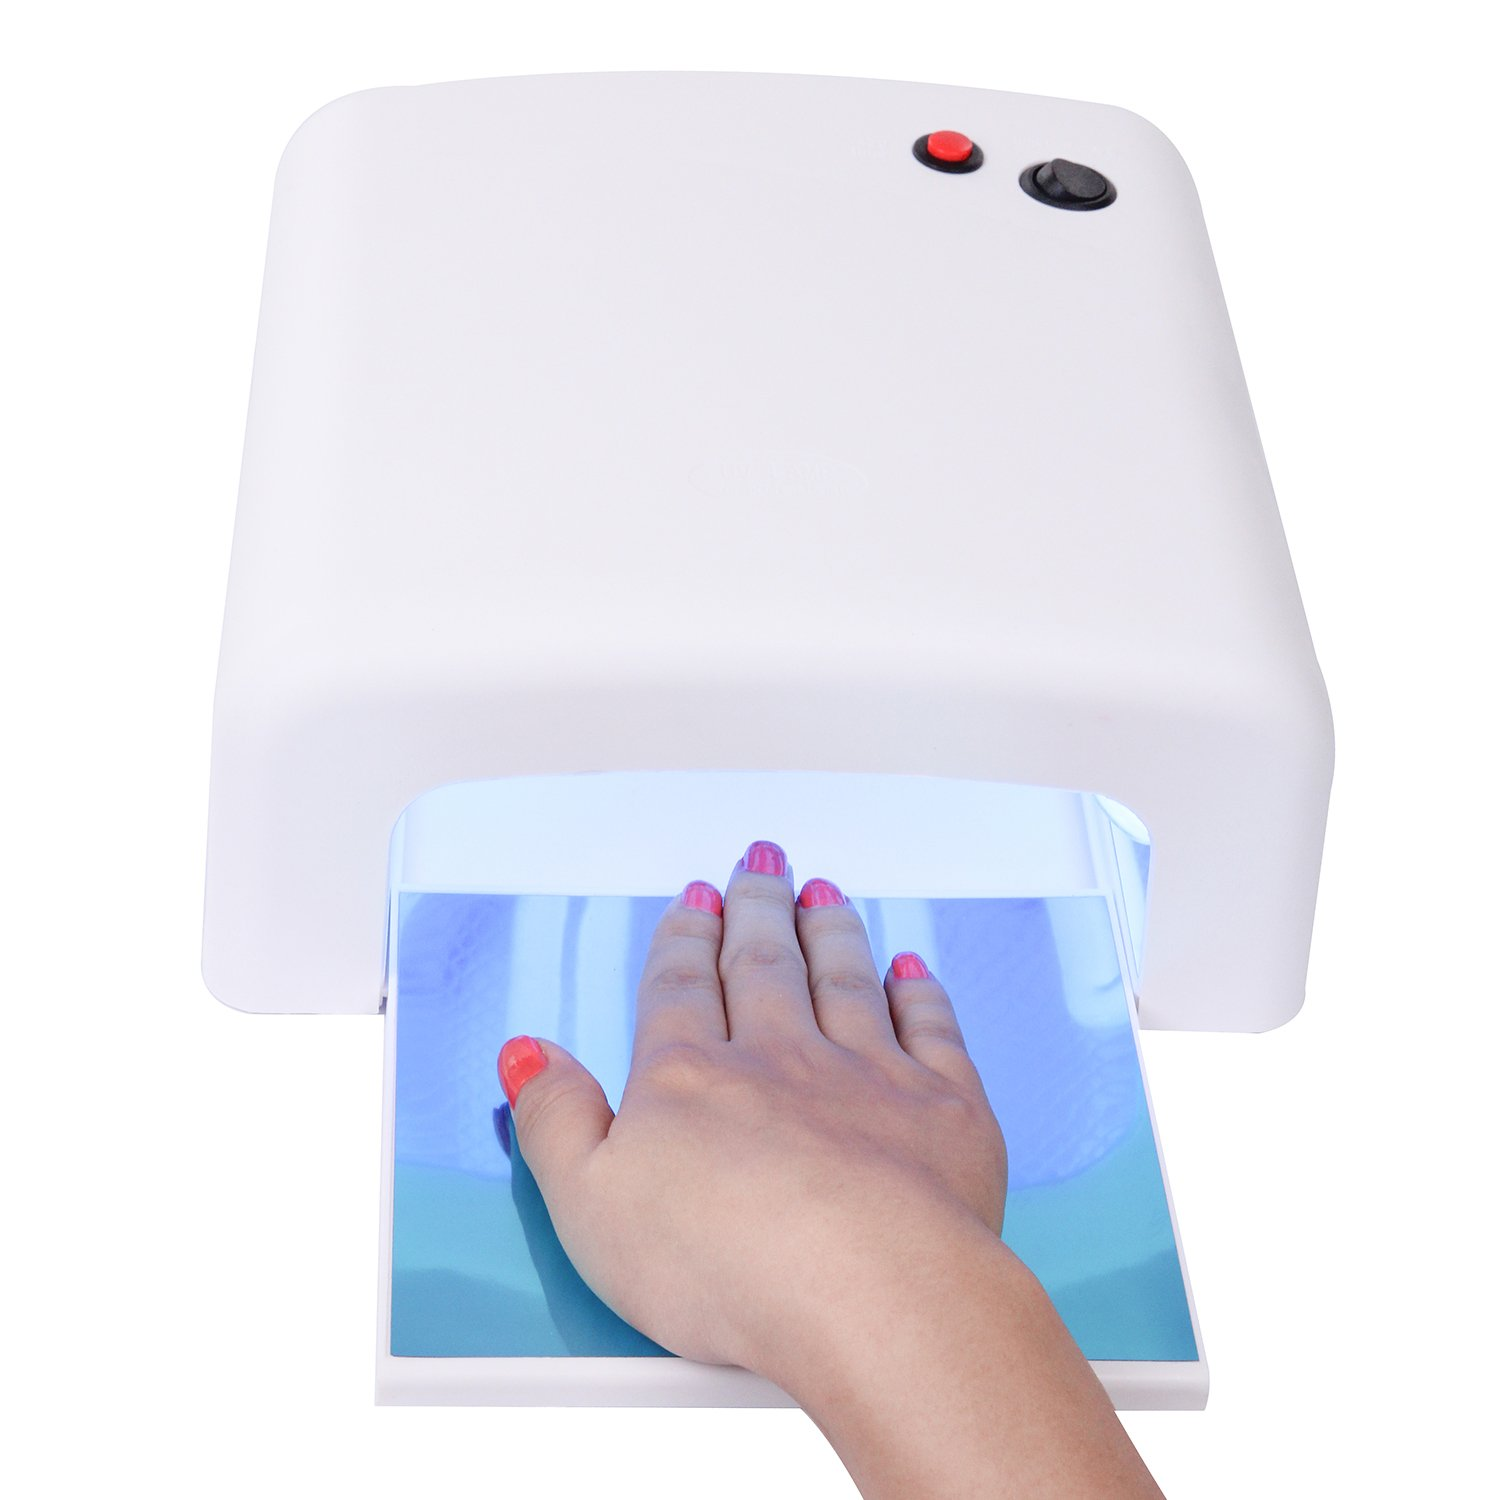 MAKARTT 36W UV Curing Lamp for UV Nail Gel Manicure/Pedicure Nail ...